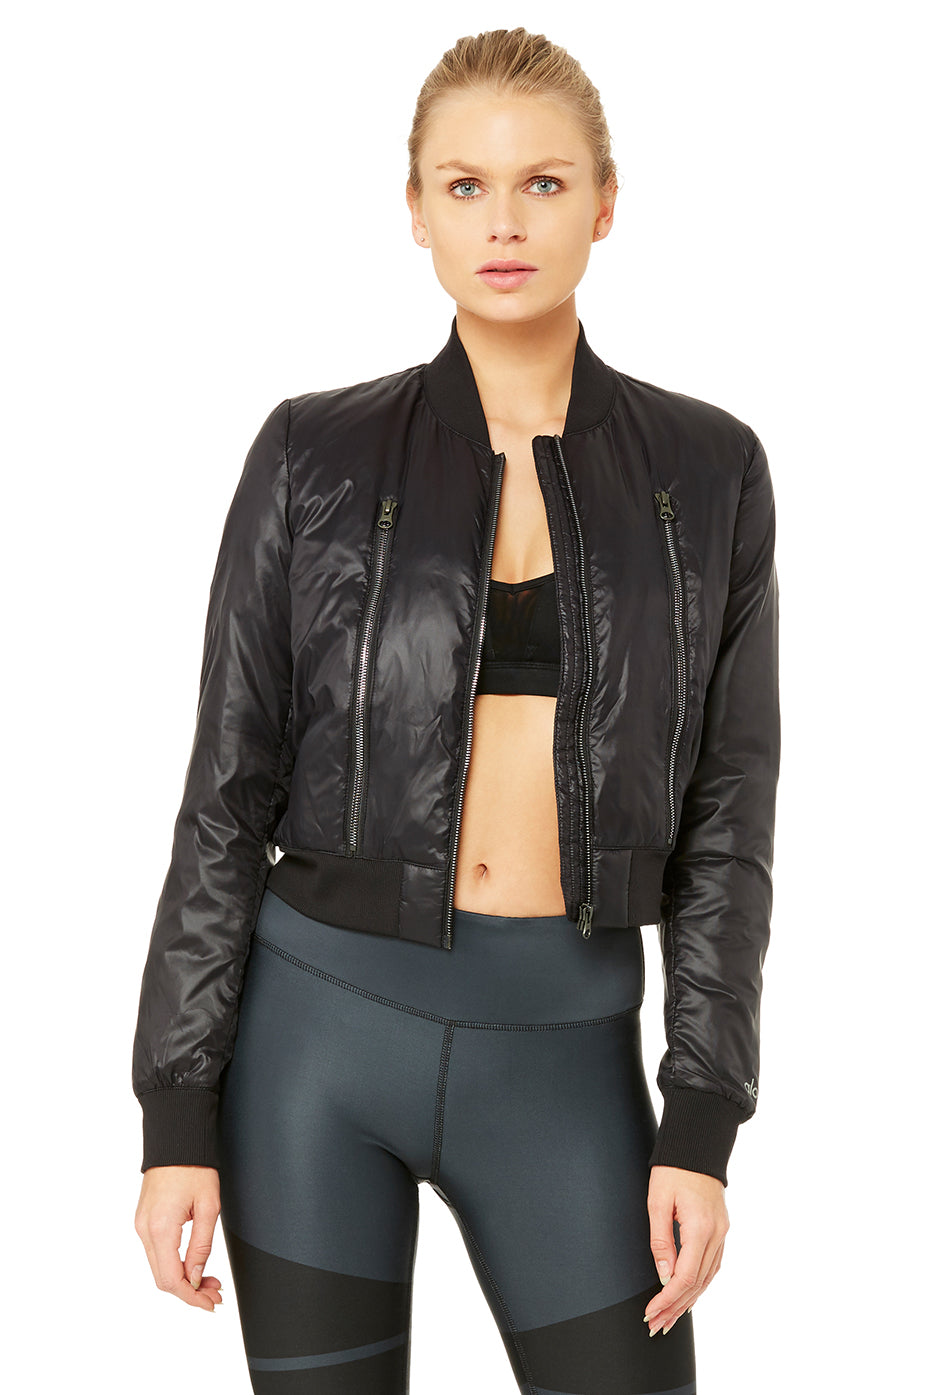 Off-Duty Graphic Bomber Jacket 2